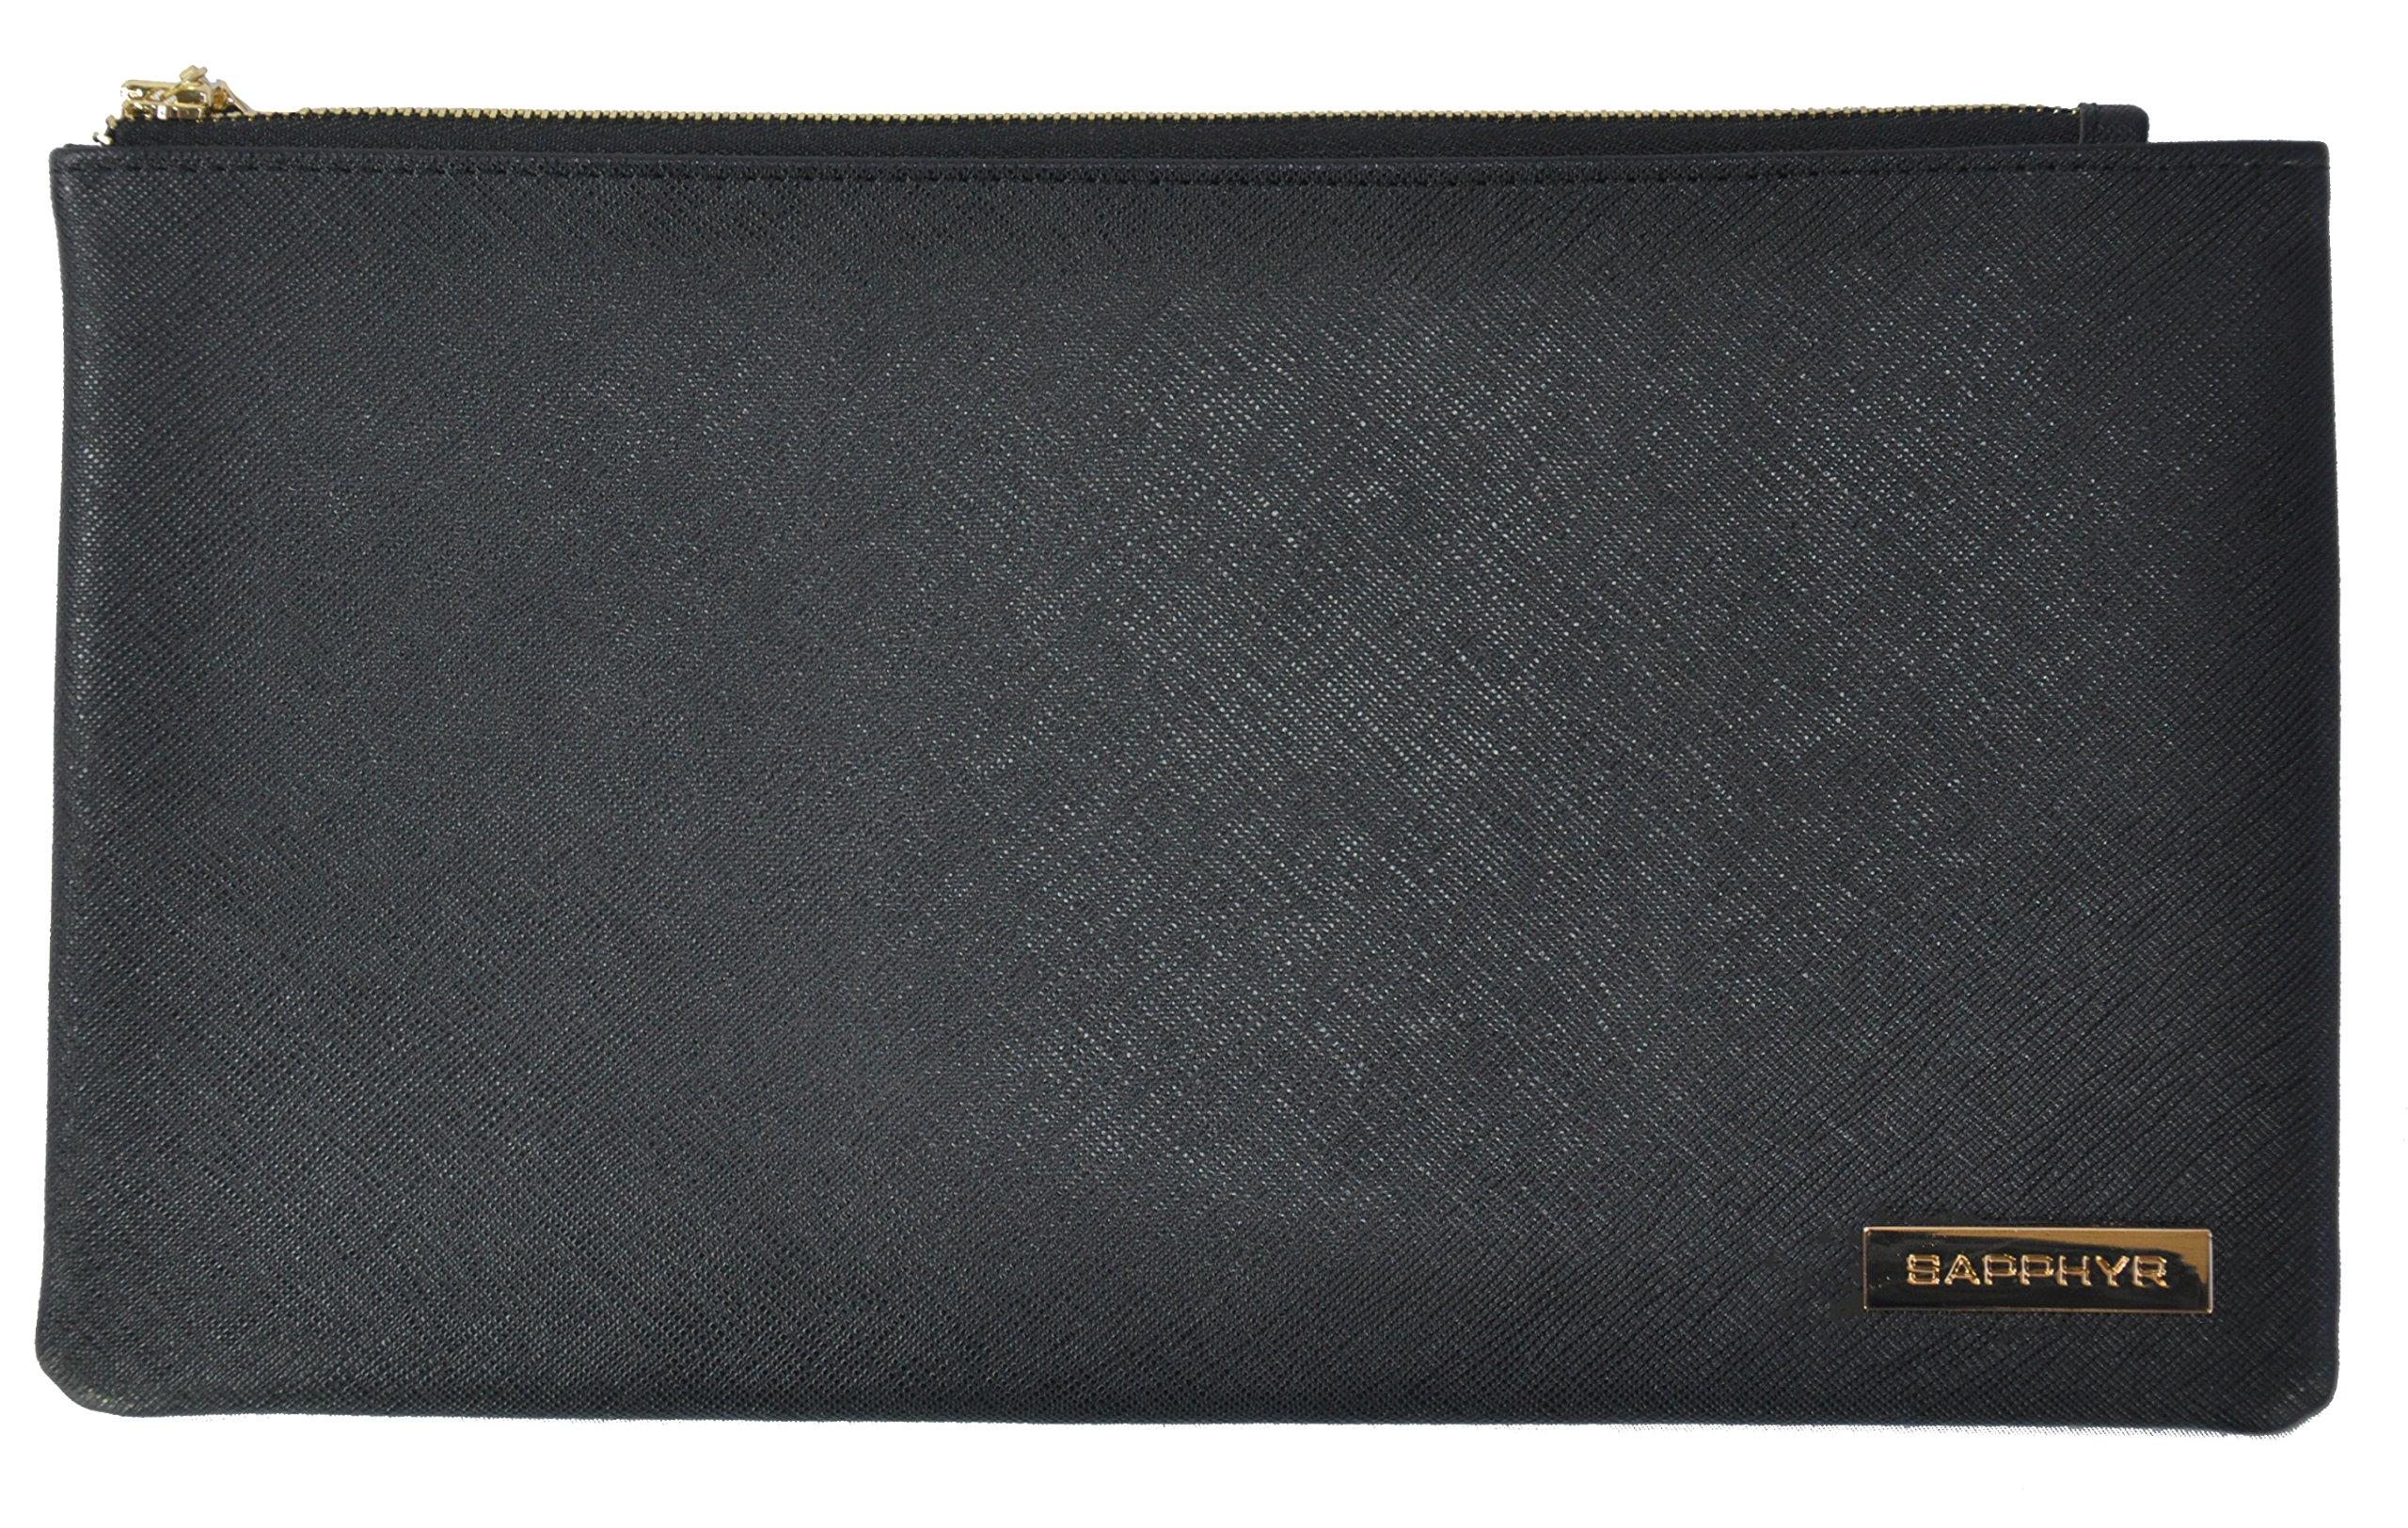 Saffiano Bank Bag by Sapphyr   For Cashiers, Checks and Currency   Luxury Real Leather Case with Pen Loop